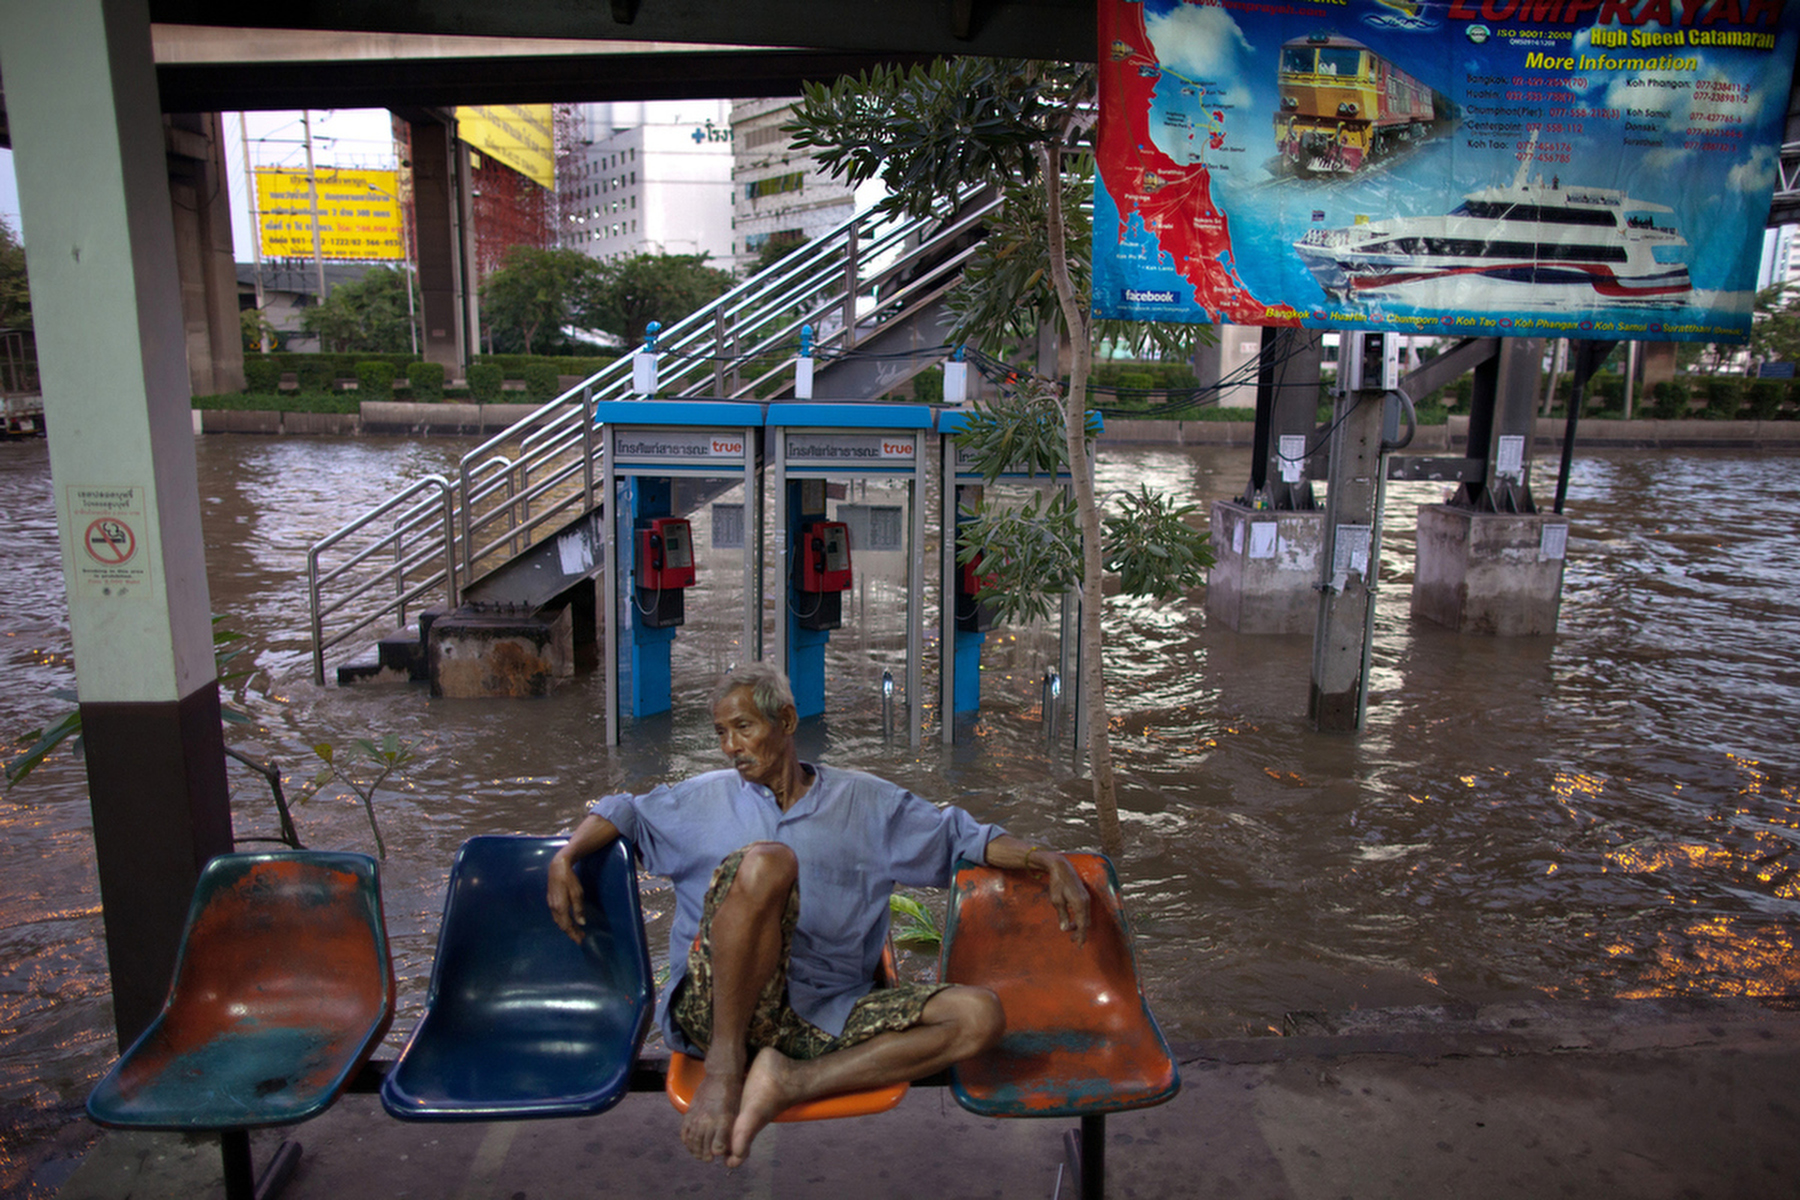 BANGKOK,THAILAND - NOVEMBER 2 : A Thai man sits at a flooded train station in the Laksi area  November 2, 2011 in Bangkok, Thailand. Thousands of flood victims have been forced to take shelter at crowded evacuation centers around the capitol city. Hundreds of factories have been closed in the central Thai province of Ayutthaya and Nonthaburi and millions of tons of rice has been damaged. Thailand is experiencing the worst flooding in over 50 years which has affected more than nine million people. Over 400 people have died in flood-related incidents since late July according to the Department of Disaster Prevention and Mitigation.(Photo by Paula Bronstein /Getty Images)